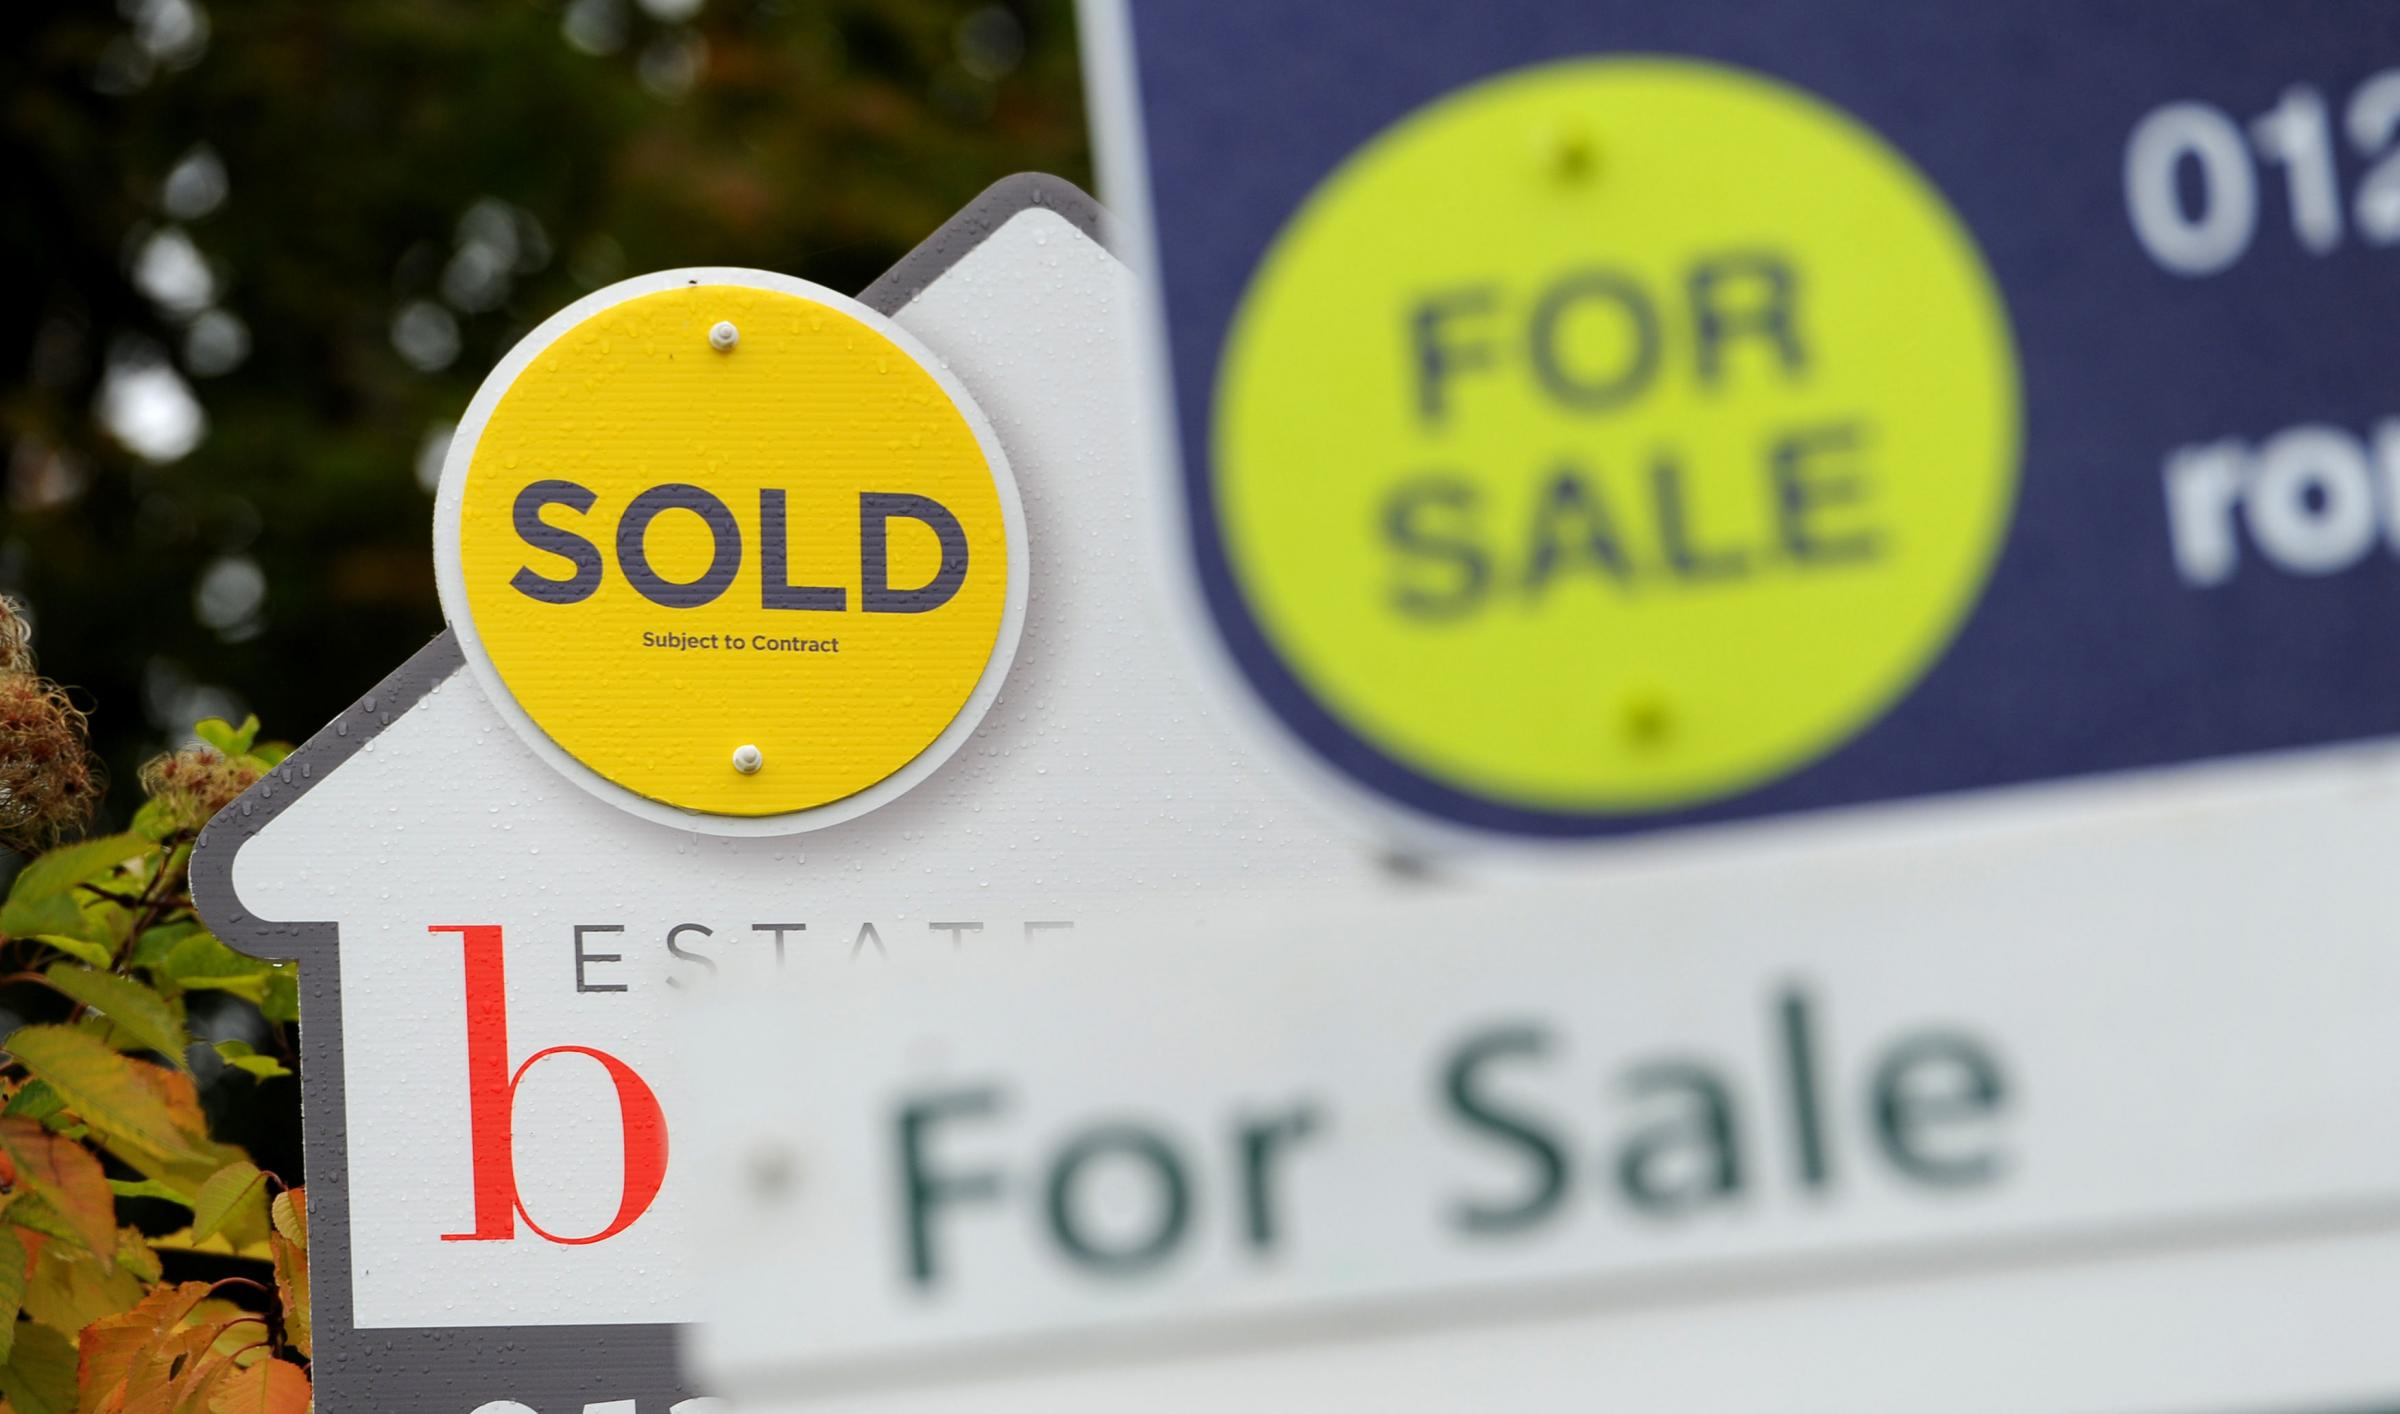 HOUSE PRICES: According to an index, house prices fell by 3.1% month-on-month in April, the biggest monthly decline since September 2010. The sharp decrease took the average UK house price to £220,962, Halifax said. Photo: Andrew Matthews/PA Wire